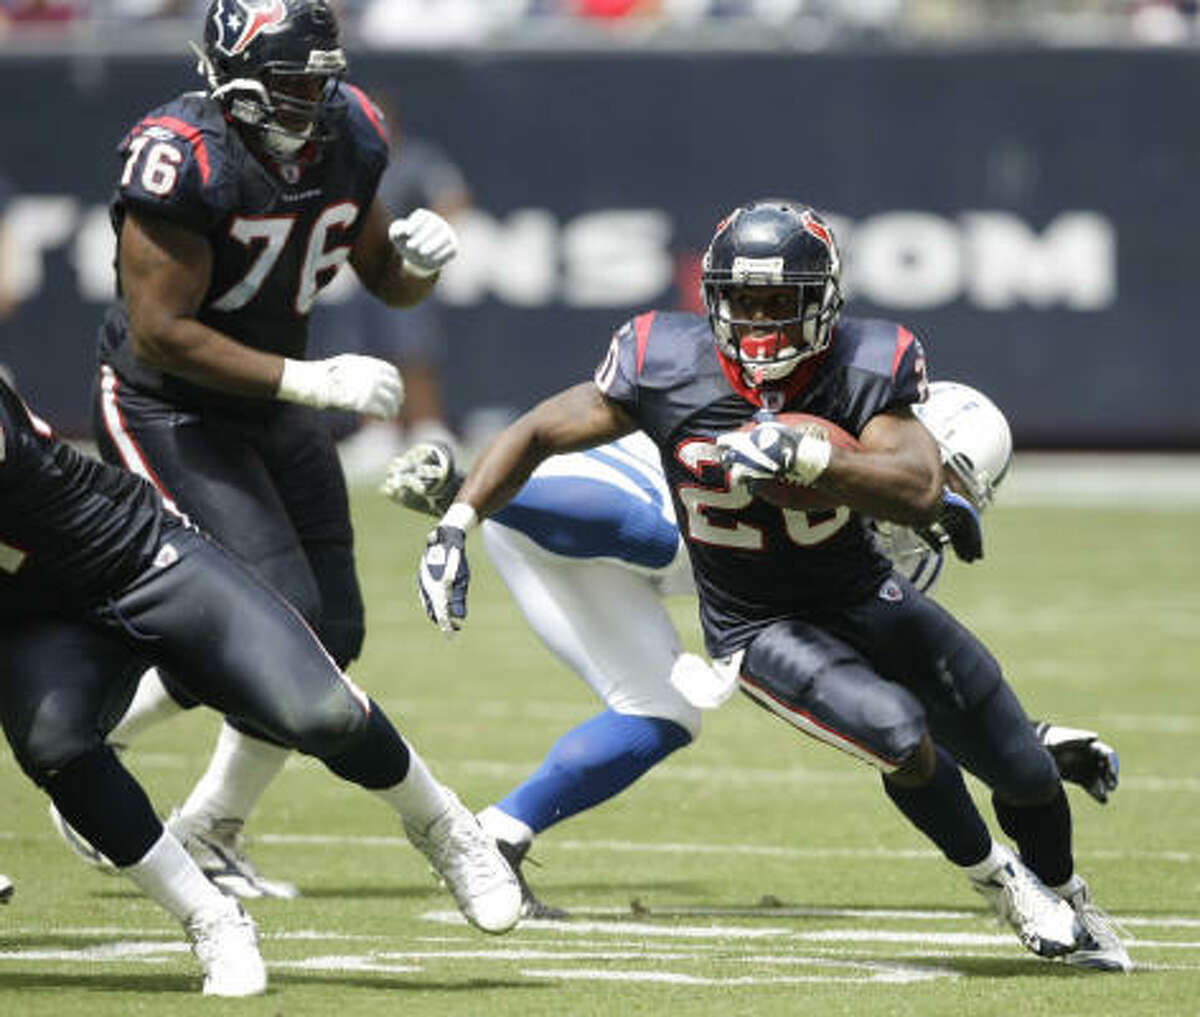 Texans running back Steve Slaton (20) shoots through the hole for yardage during third quarter againts the Indianapolis Colts at Reliant Stadium.